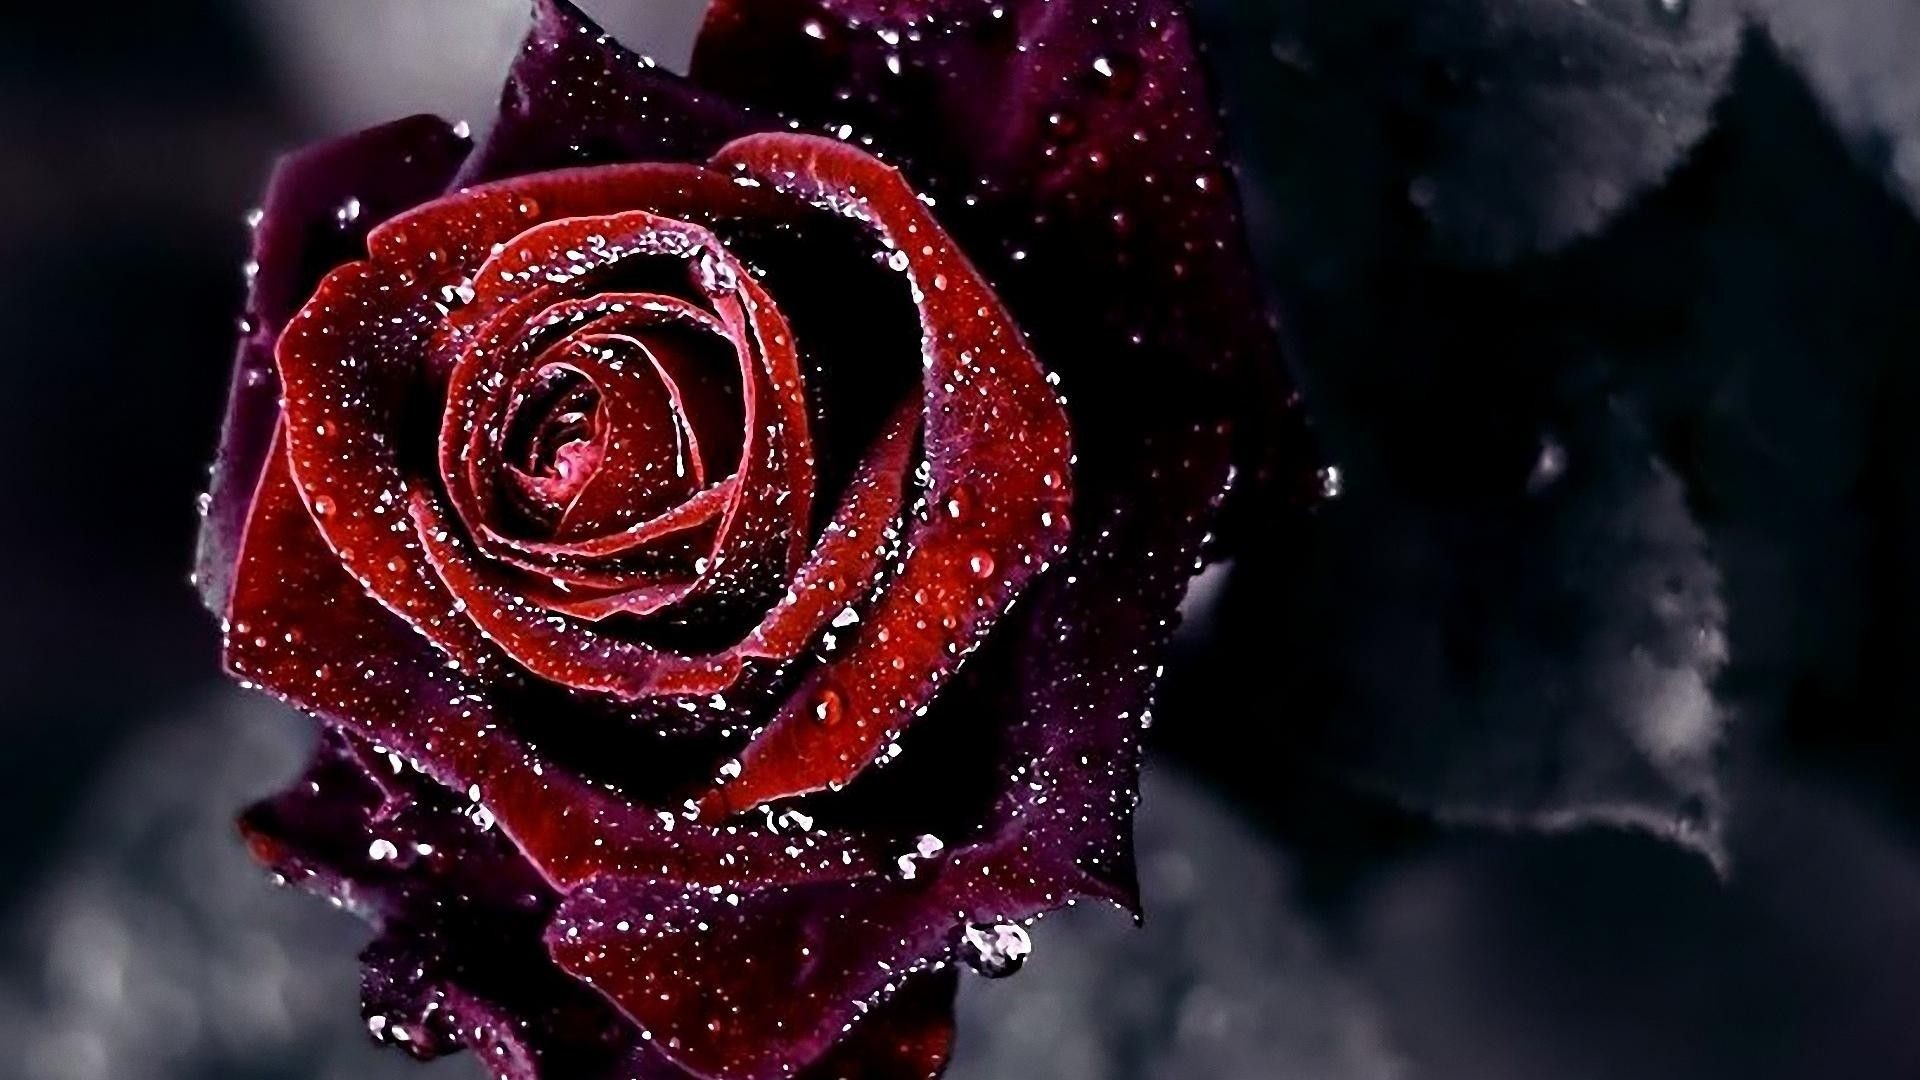 Black Rose Gothic Wallpapers Picture with HD Quality px 216.53 KB